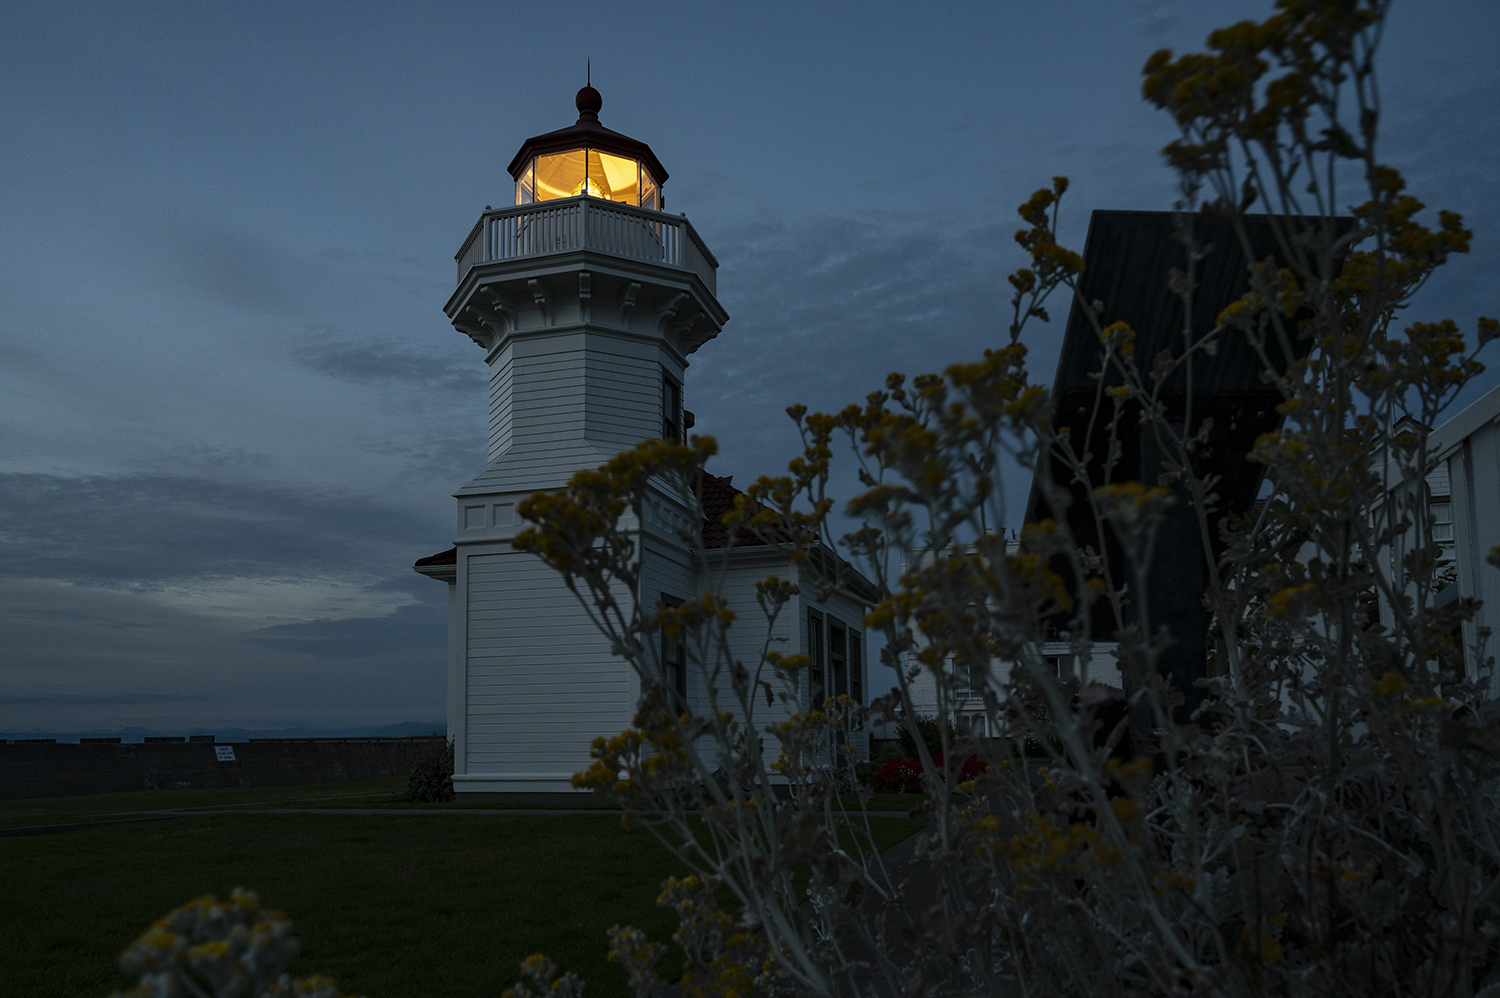 Fully automated in 1979, the 38-foot tall Mukilteo lighthouse and fog signal can now be seen inside Mukilteo Lighthouse Park. In 2001, the U.S. Coast Guard granted ownership of the beacon to the city of Mukilteo. (Image: Rachael Jones / Seattle Refined)